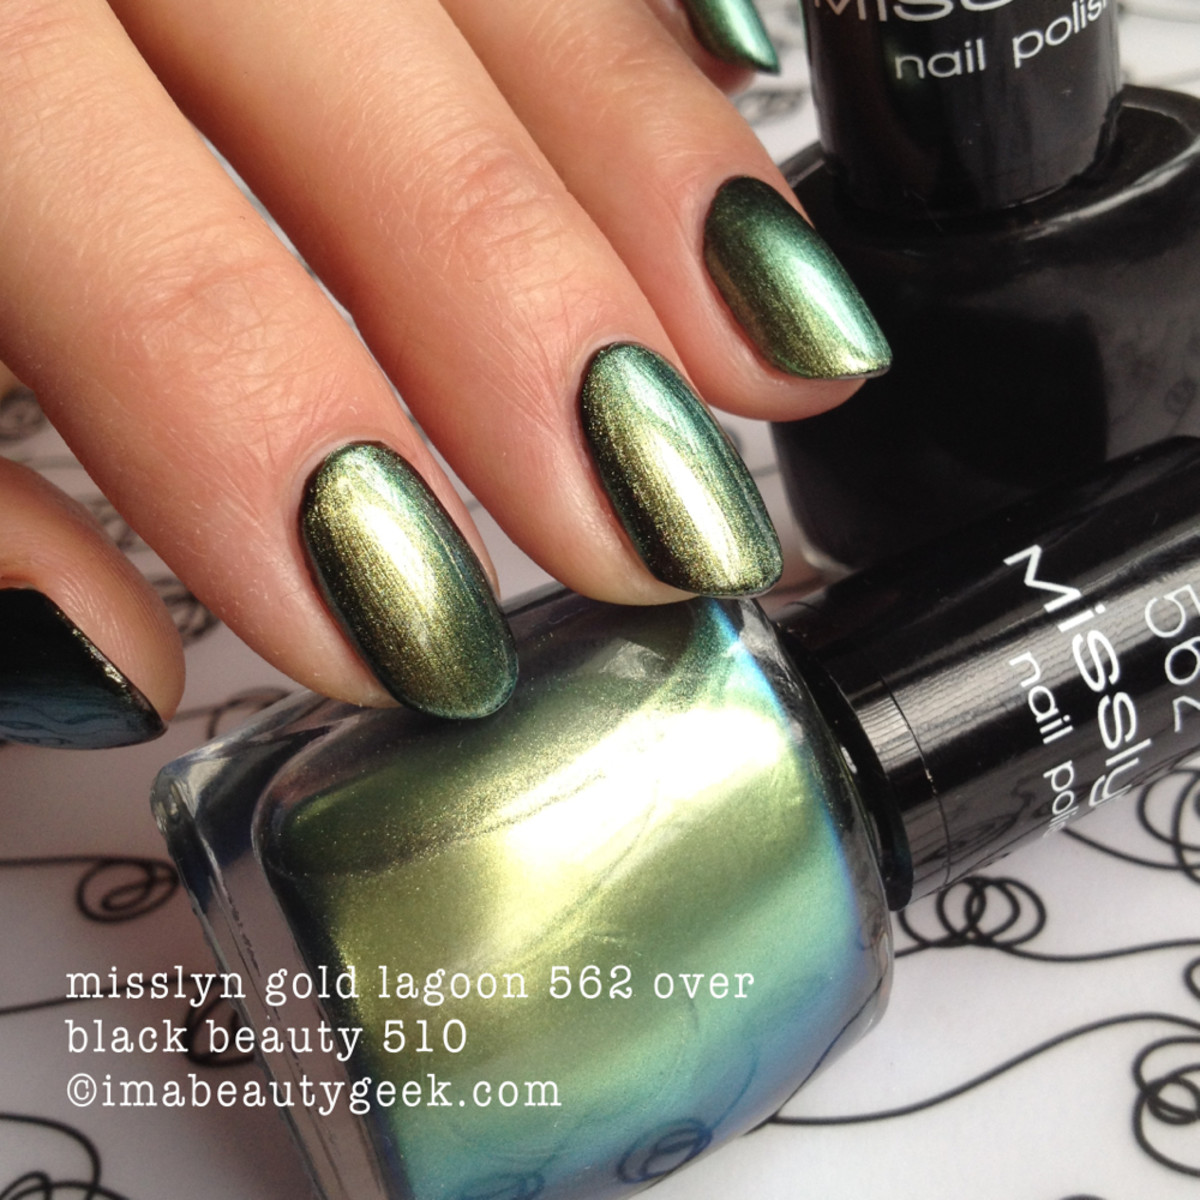 Misslyn Gold Lagoon 562 over black